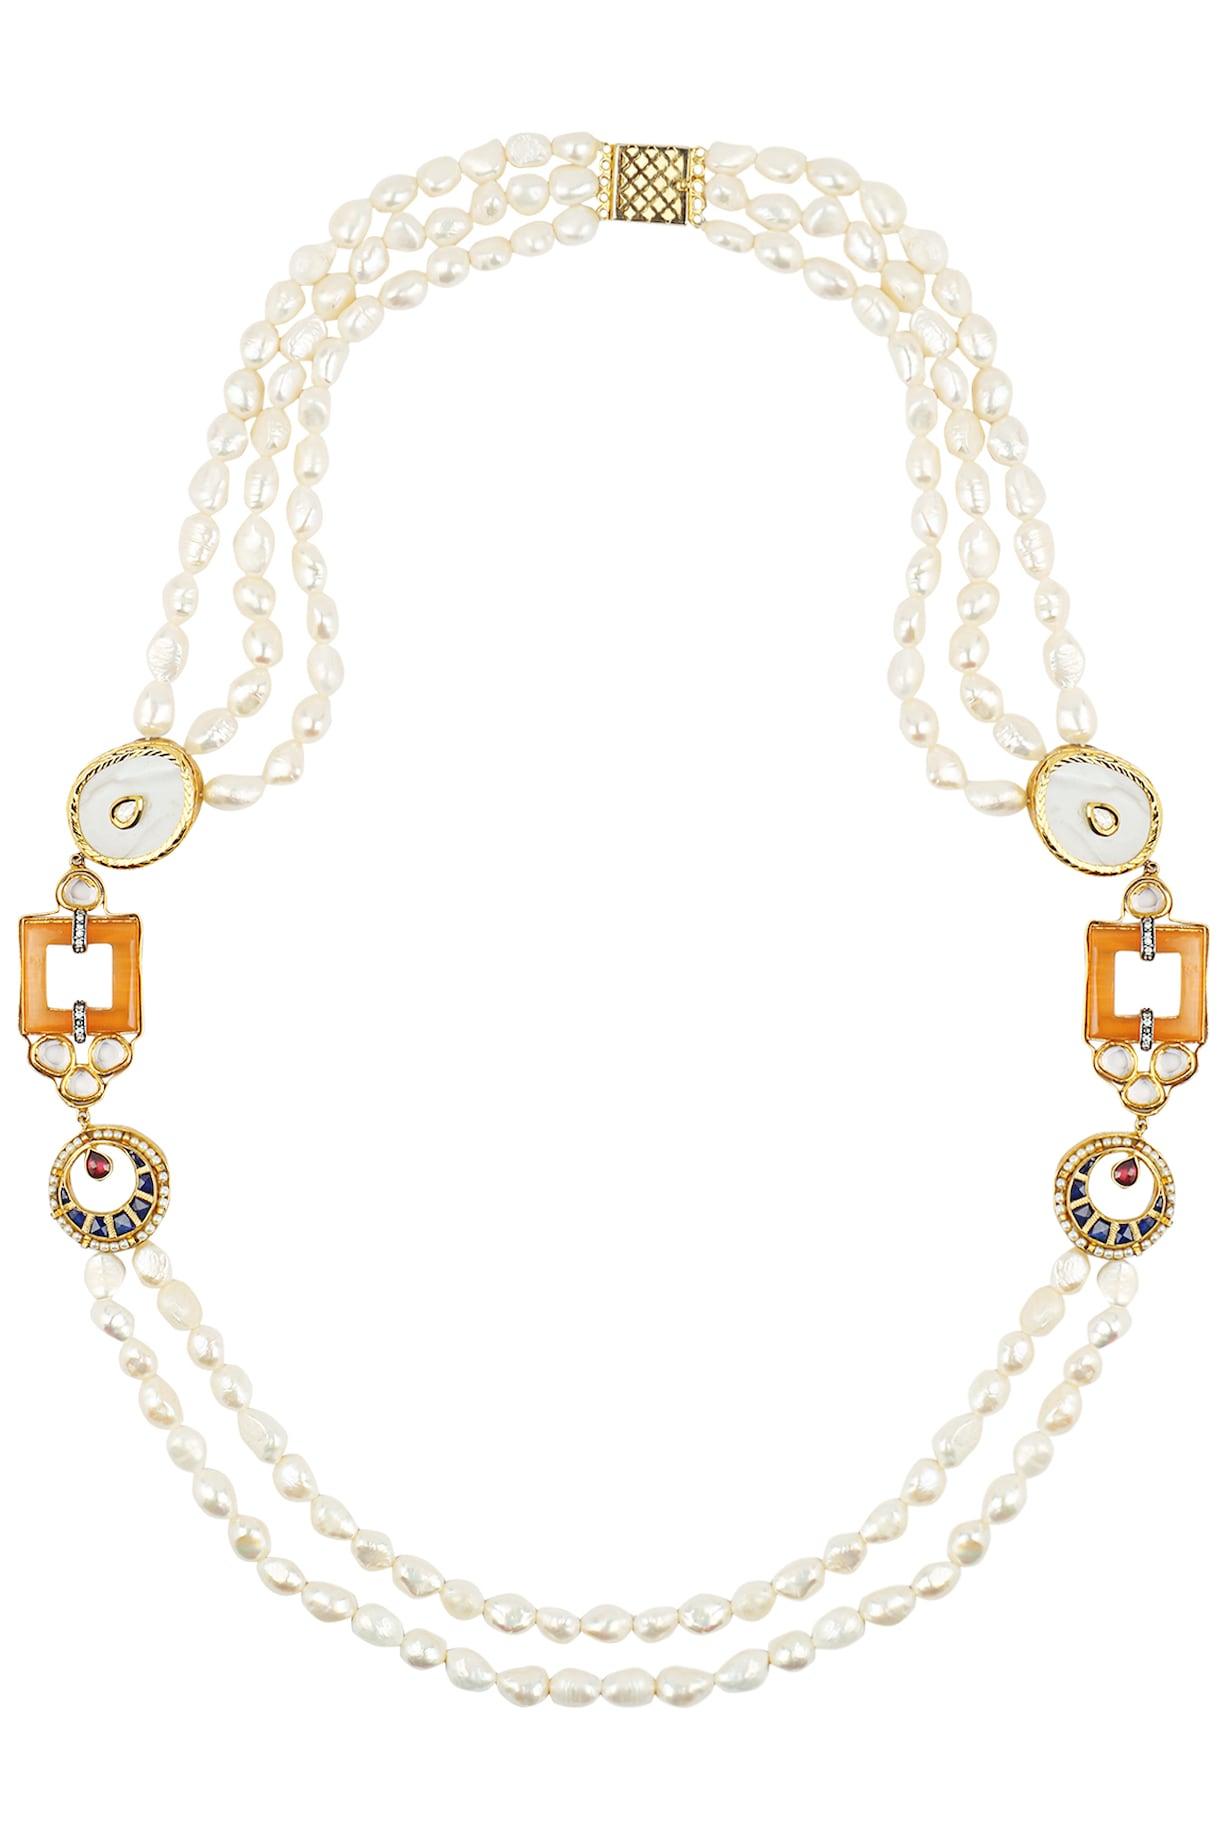 Moh-Maya by Disha Khatri Necklaces